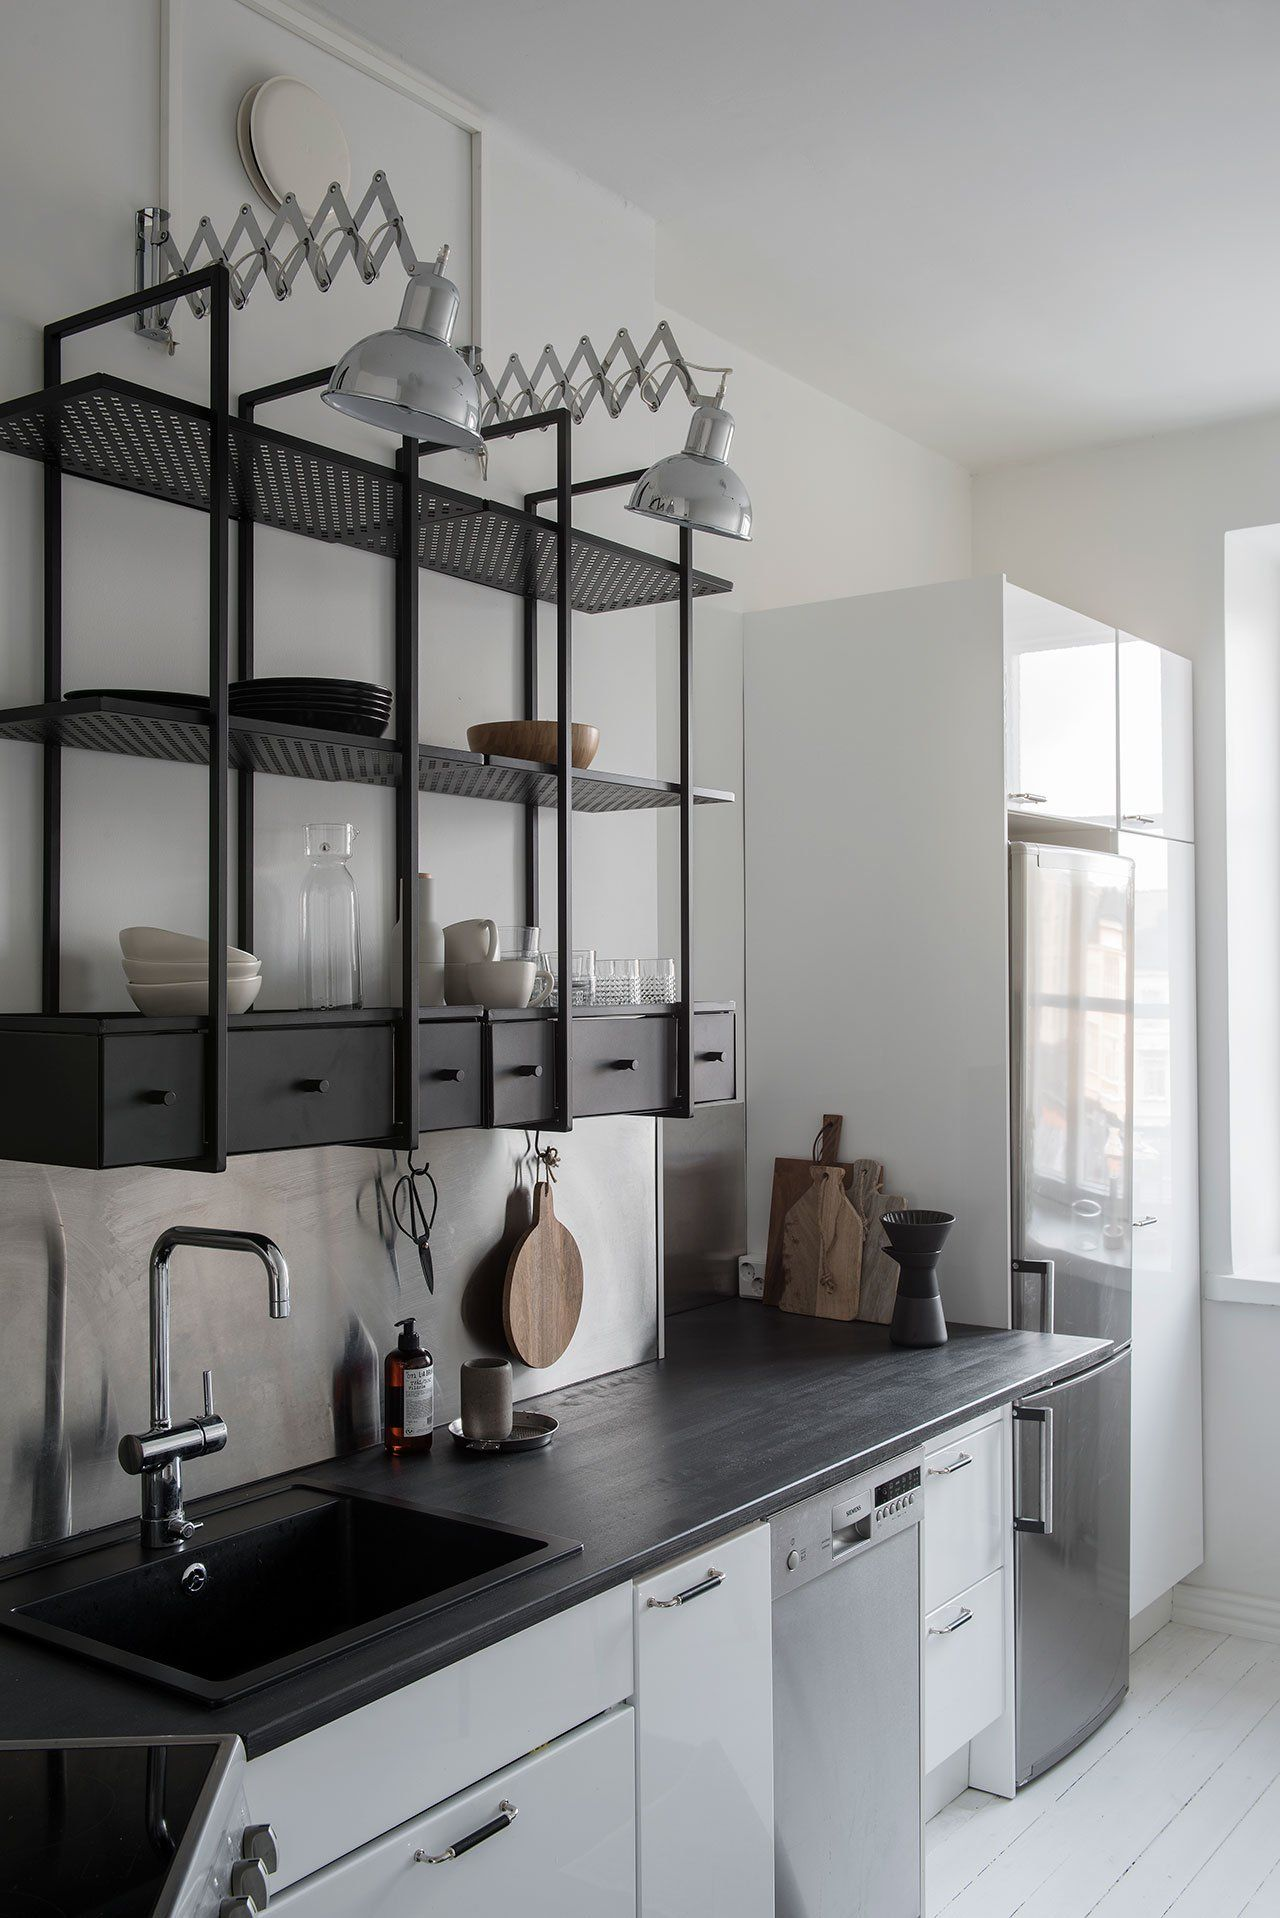 22 Jaw Dropping Small Kitchen Designs: Simply Great: An Apartment In Helsinki By Laura Seppänen